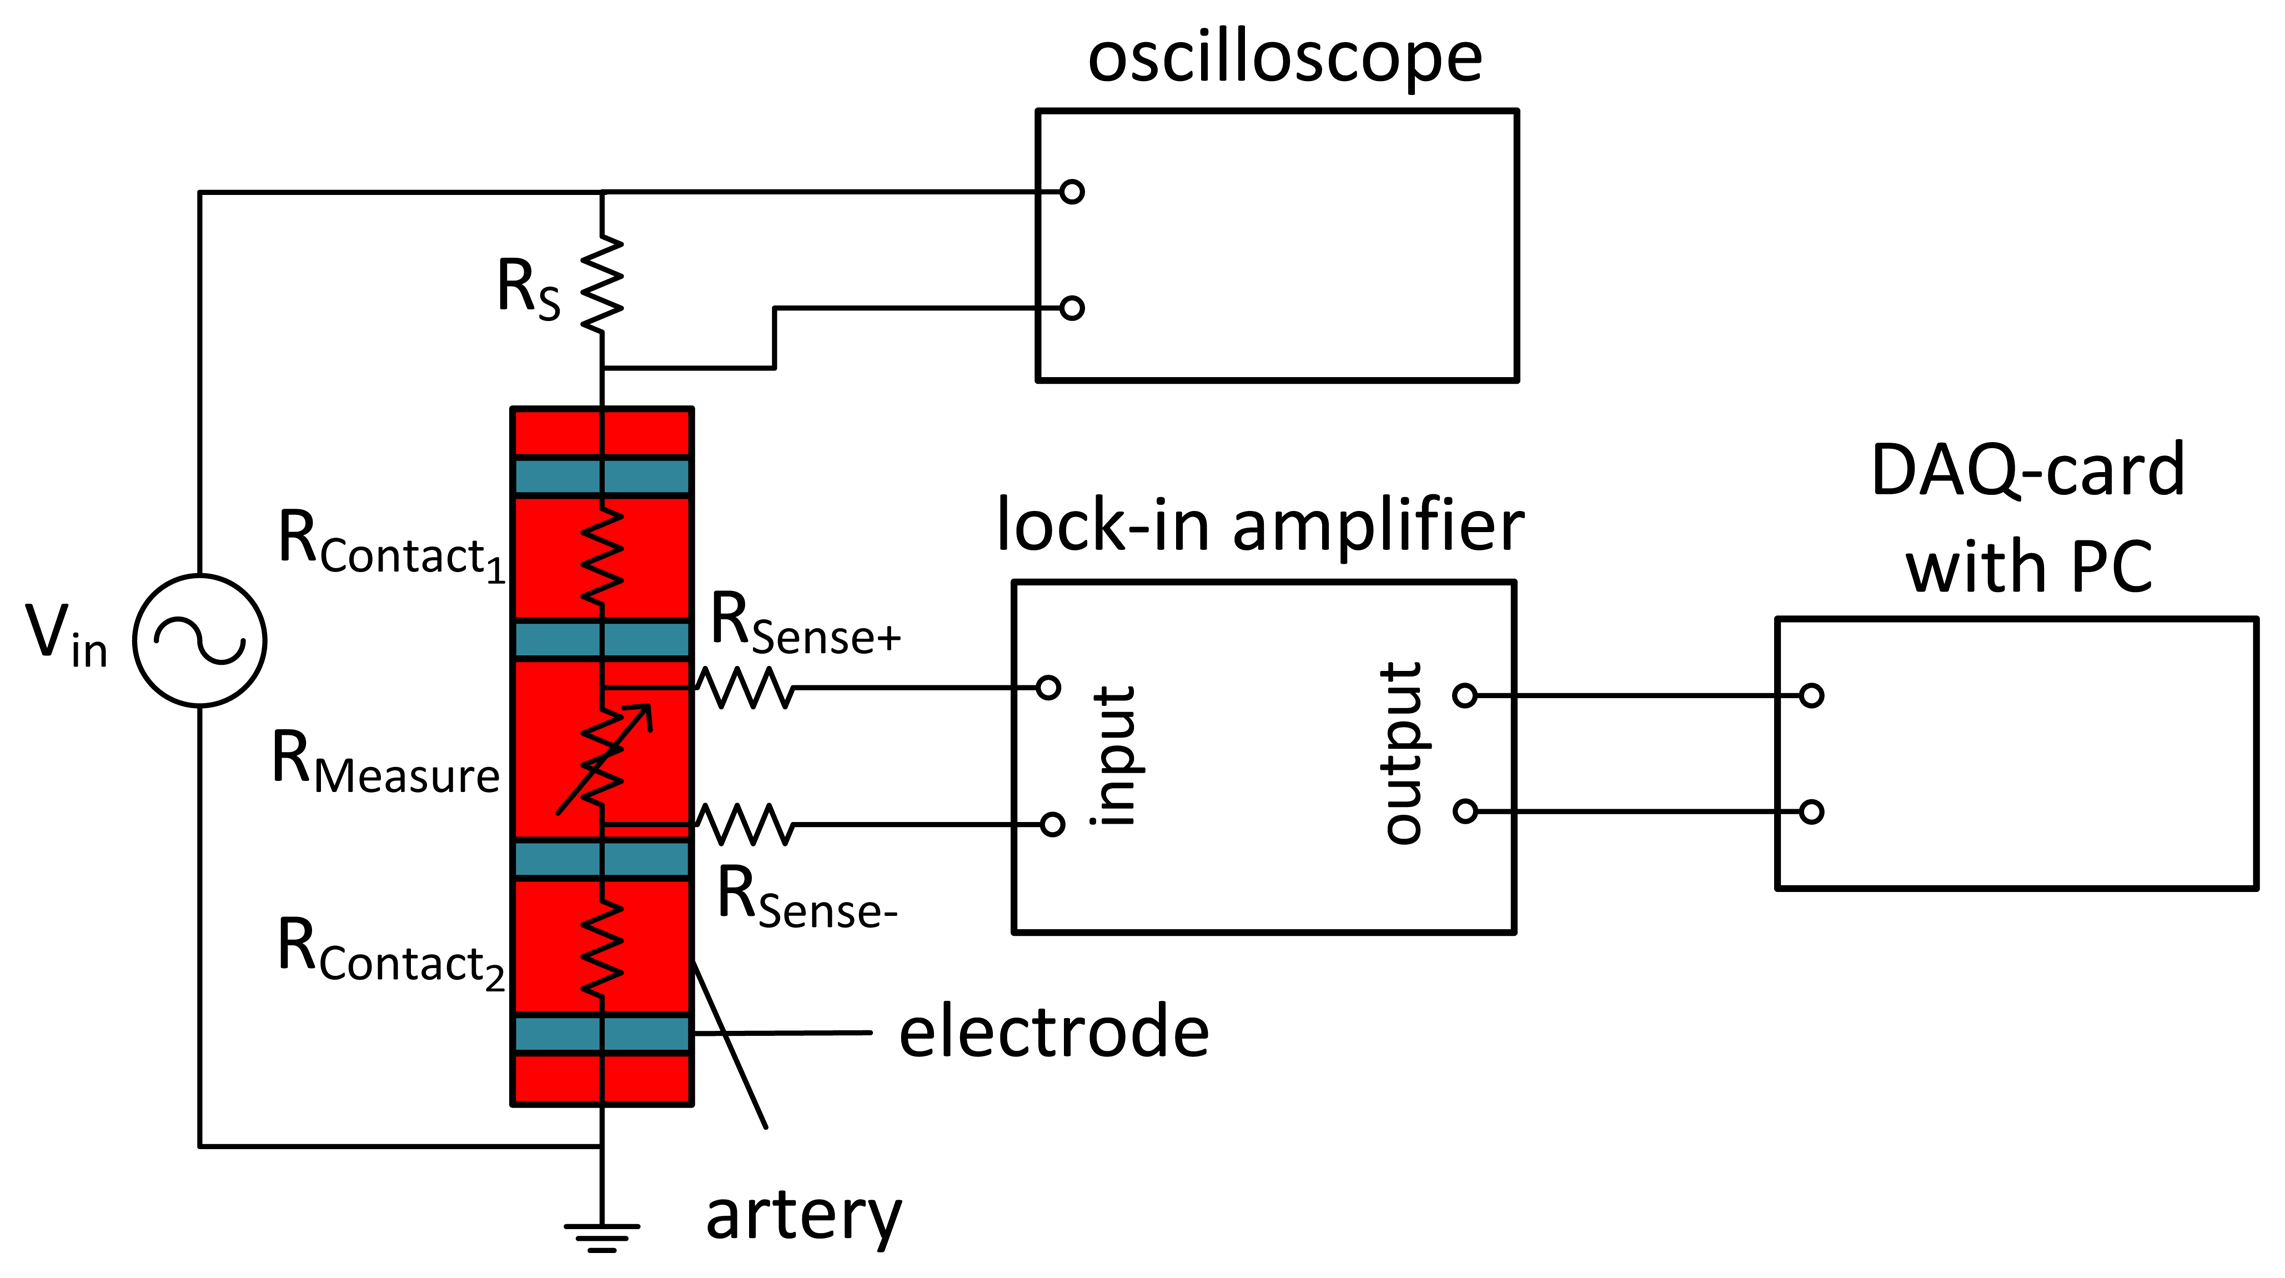 Sensors Free Full Text Implantable Impedance Plethysmography Html Amplifiers And Lockin Simplified Schematic All 14 14858f1 1024